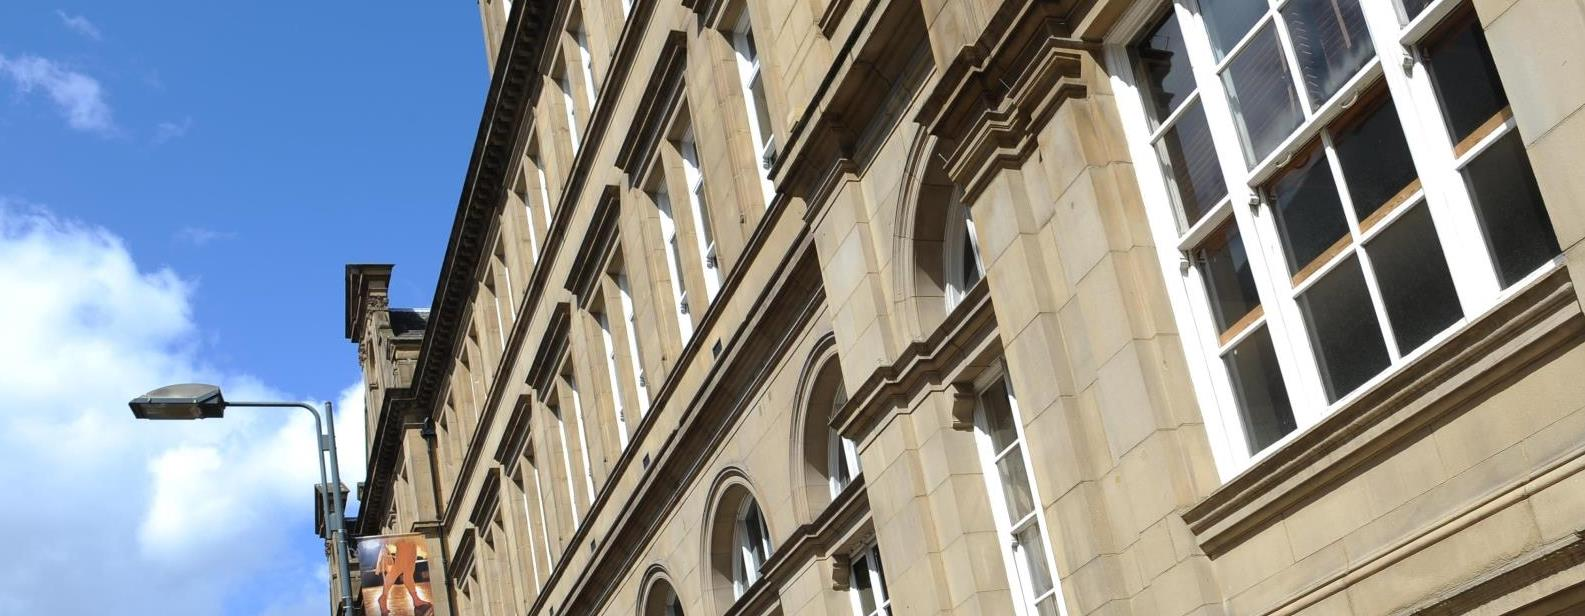 Cloth Hall Court in Leeds City Centre